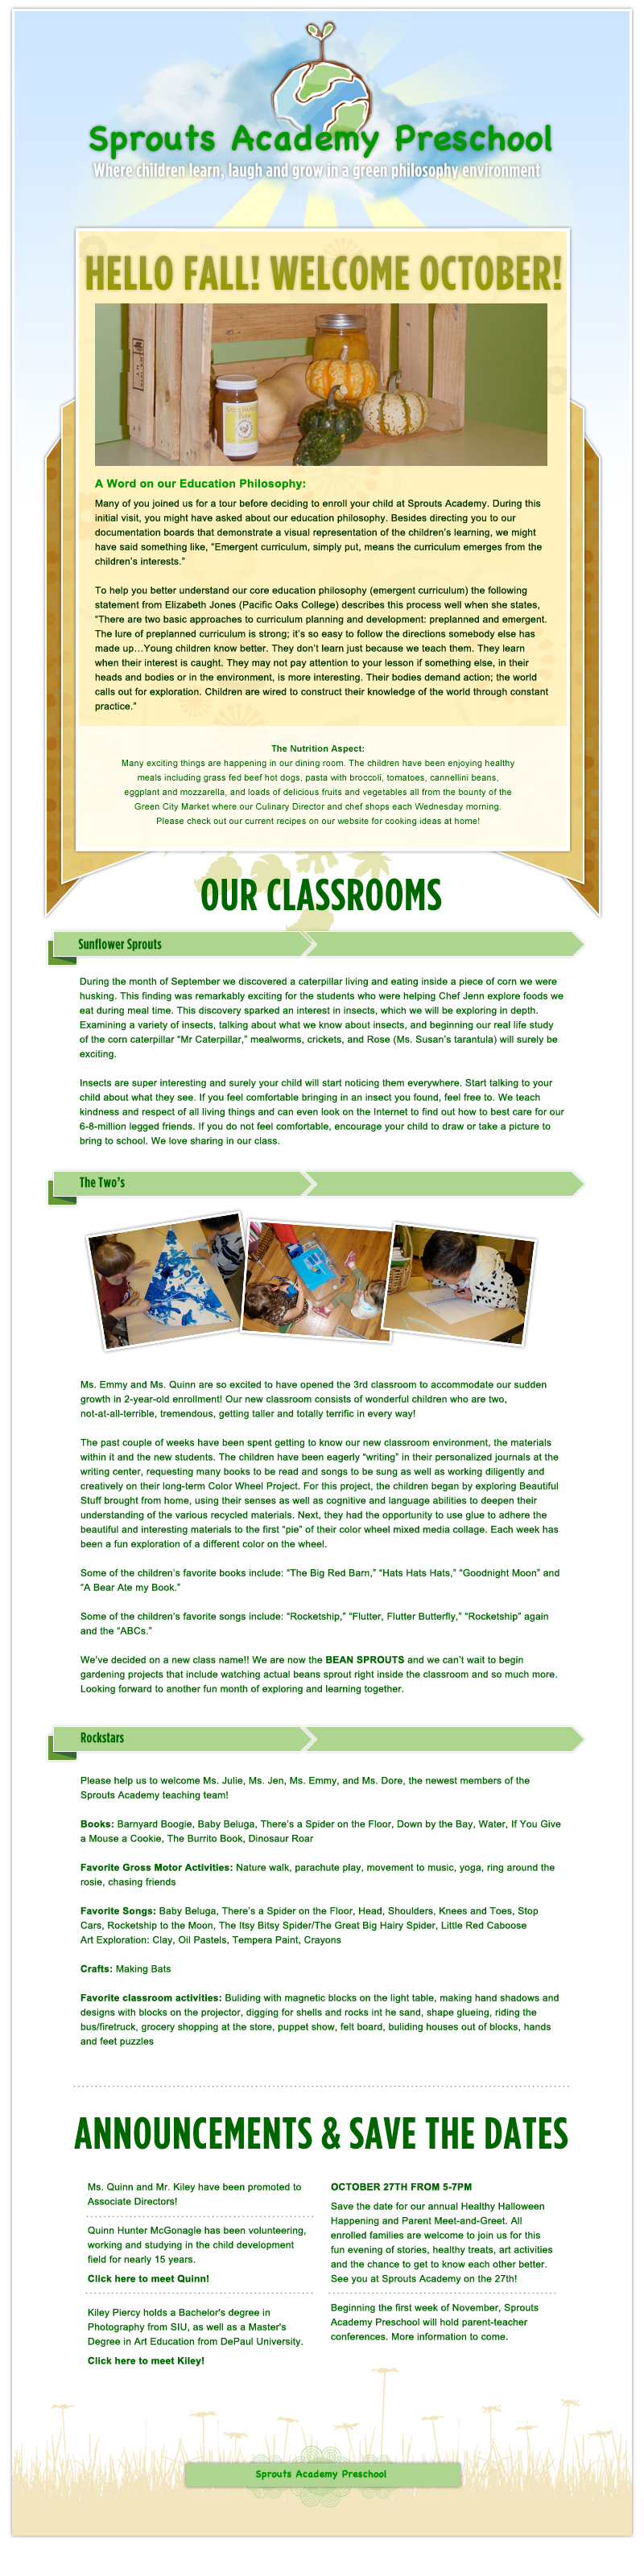 Sprouts Academy Preschool  - October Newsletter